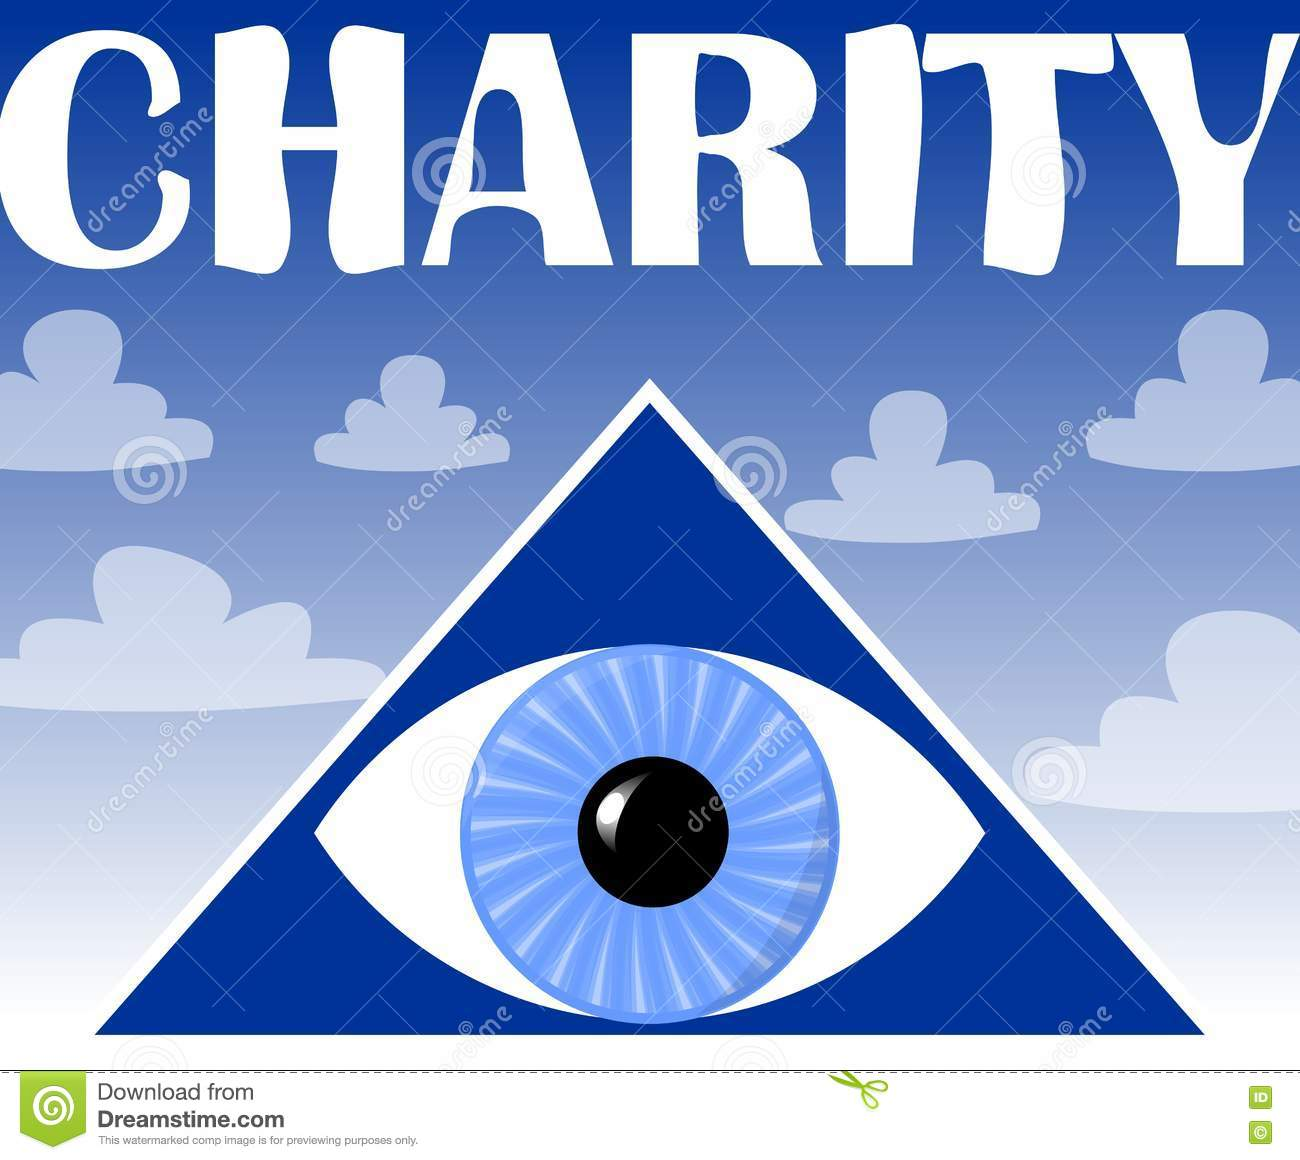 Charity flyer with a symbol of gods eye in triangle stock vector charity flyer with a symbol of gods eye in triangle buycottarizona